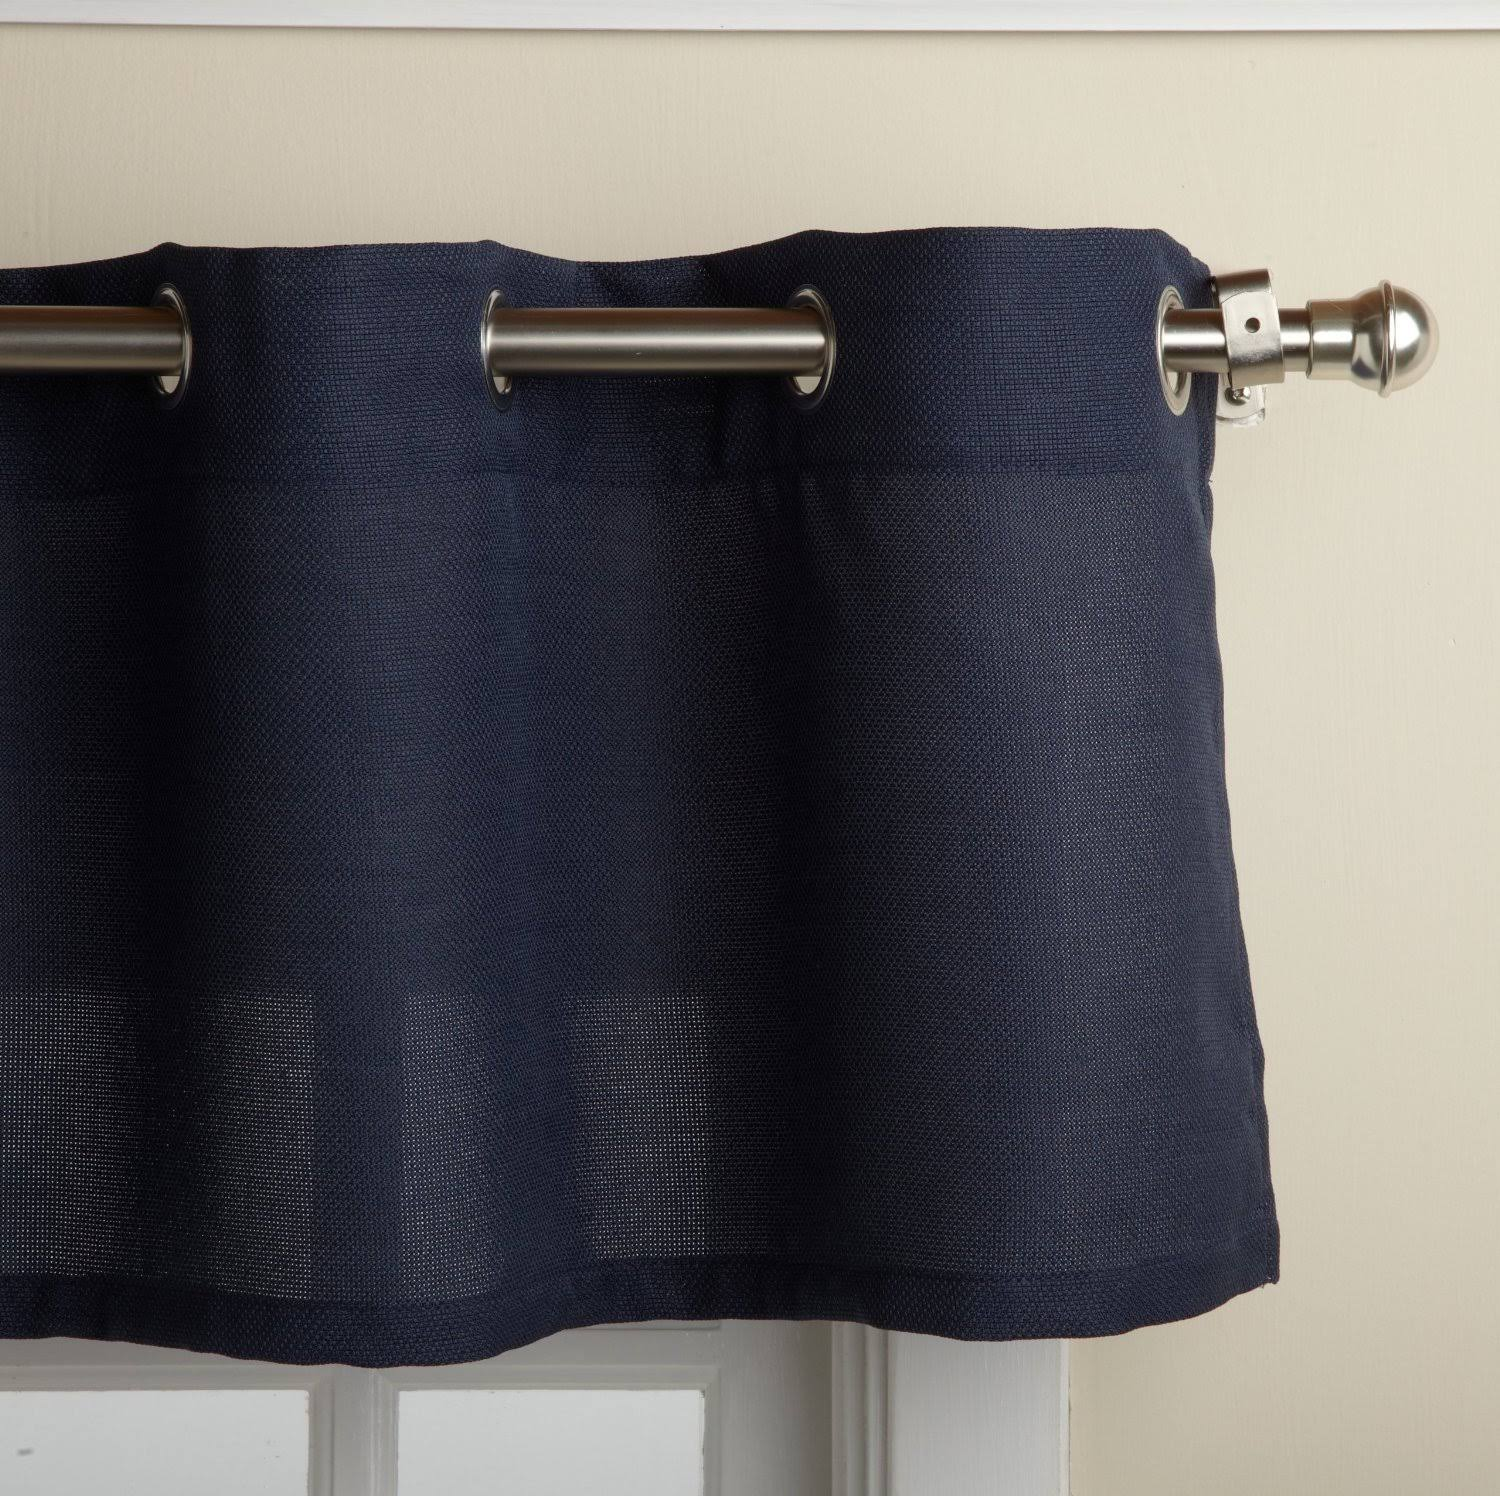 Lorraine Home Fashions Jackson 58-Inch x 12-Inch Valance, Navy